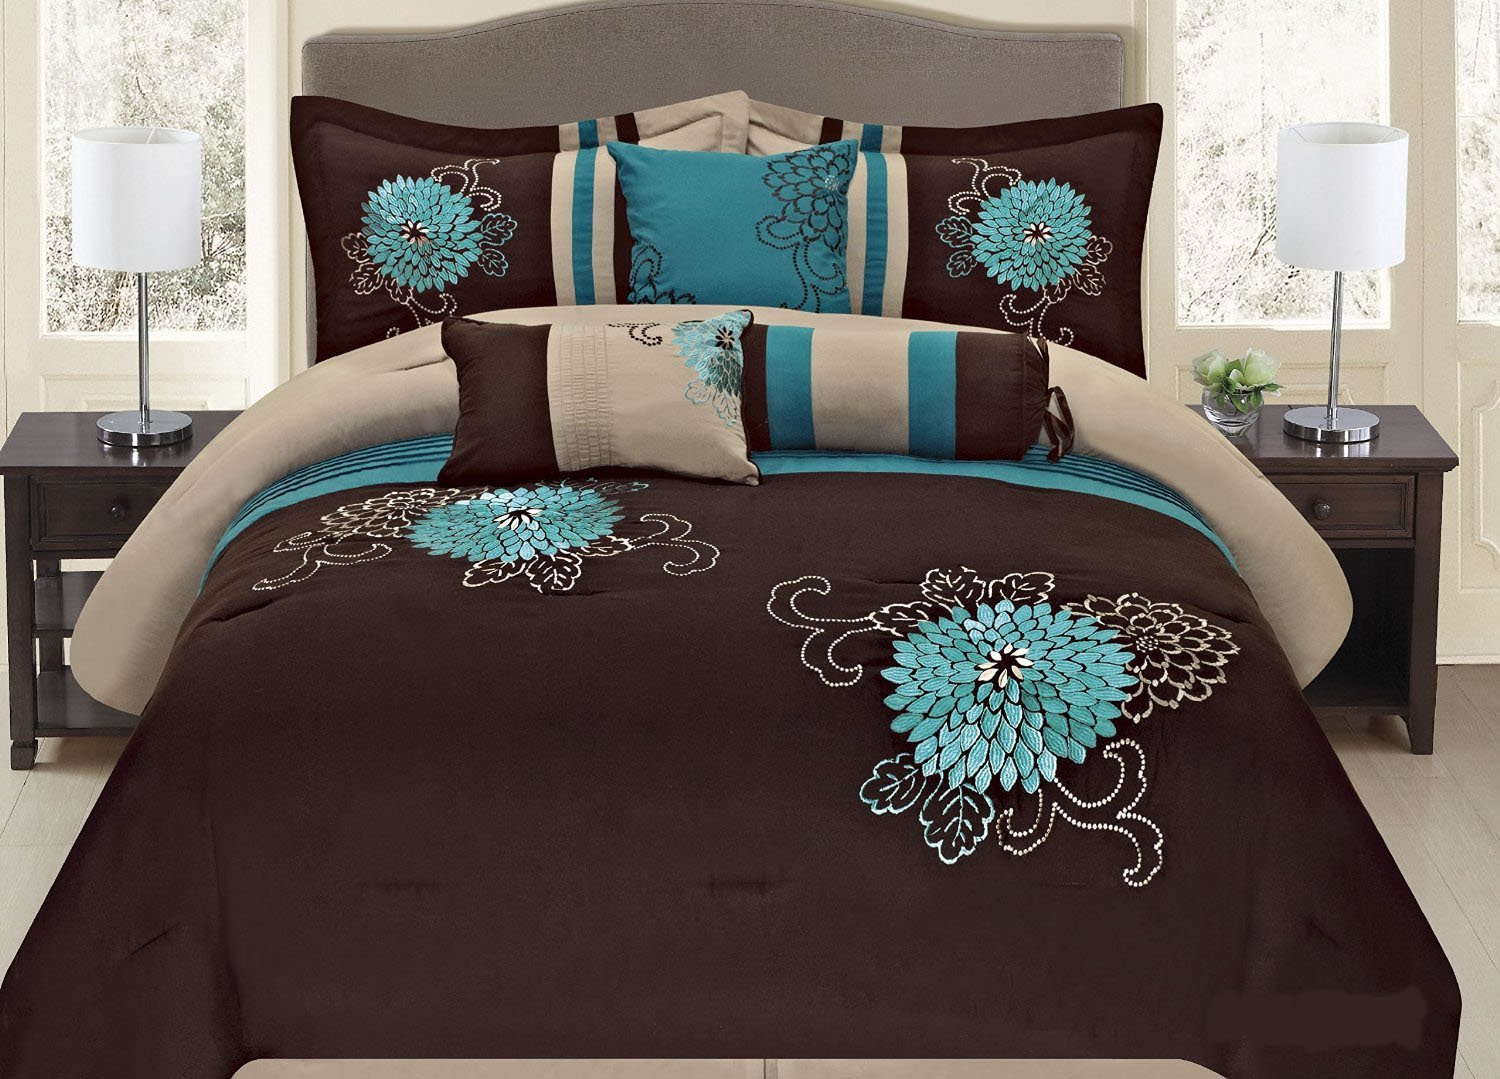 Fancy Collection 7-pc Embroidery Bedding Brown Turquoise Comforter Set Queen